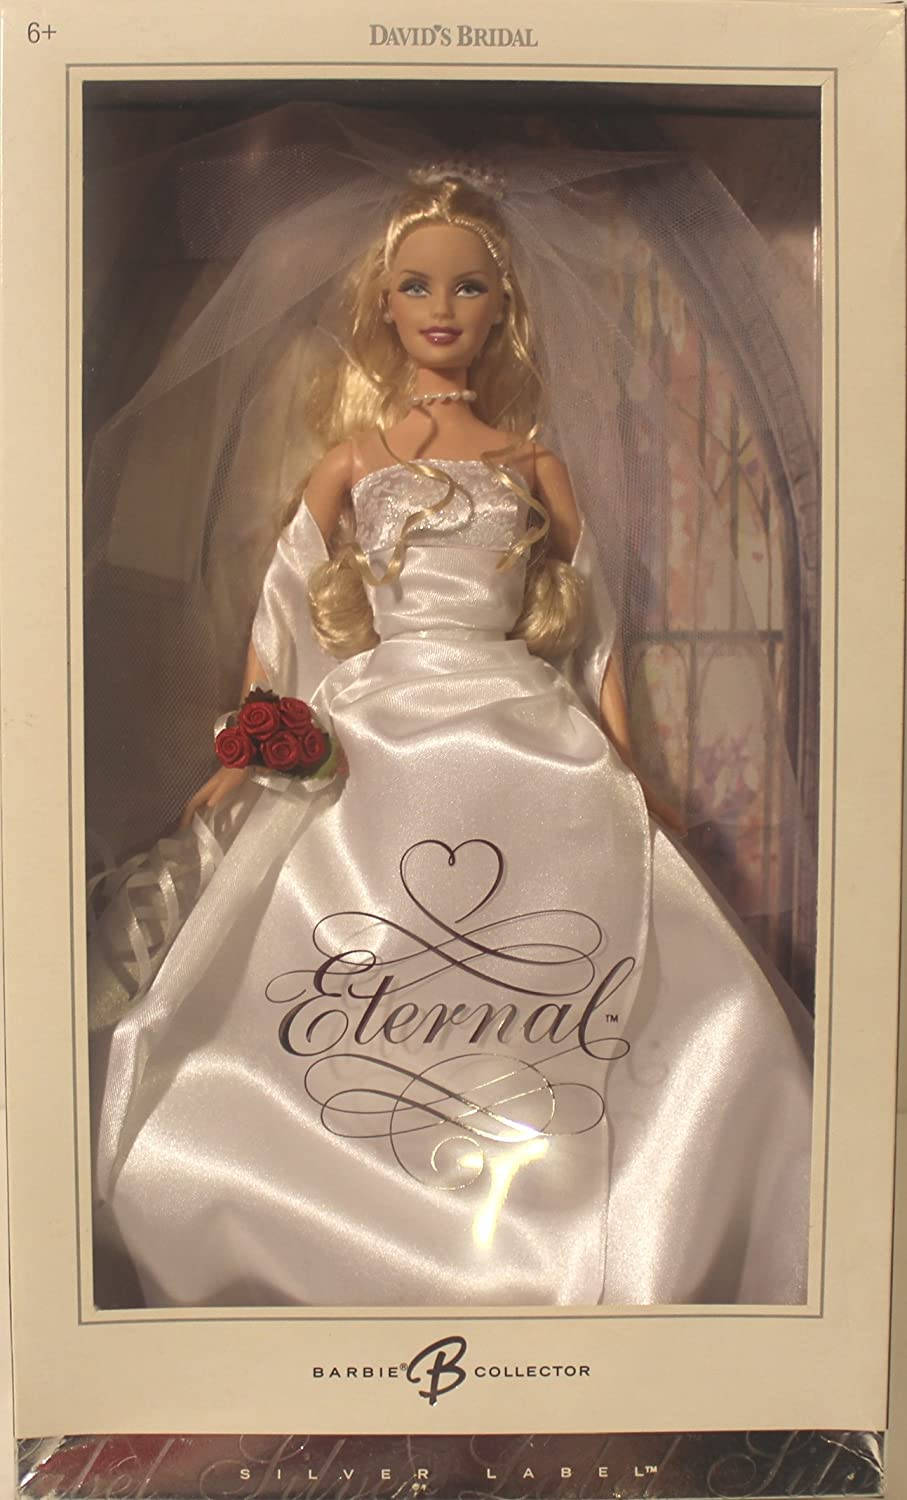 Amazon Com Barbie David S Bridal Eternal Silver Label